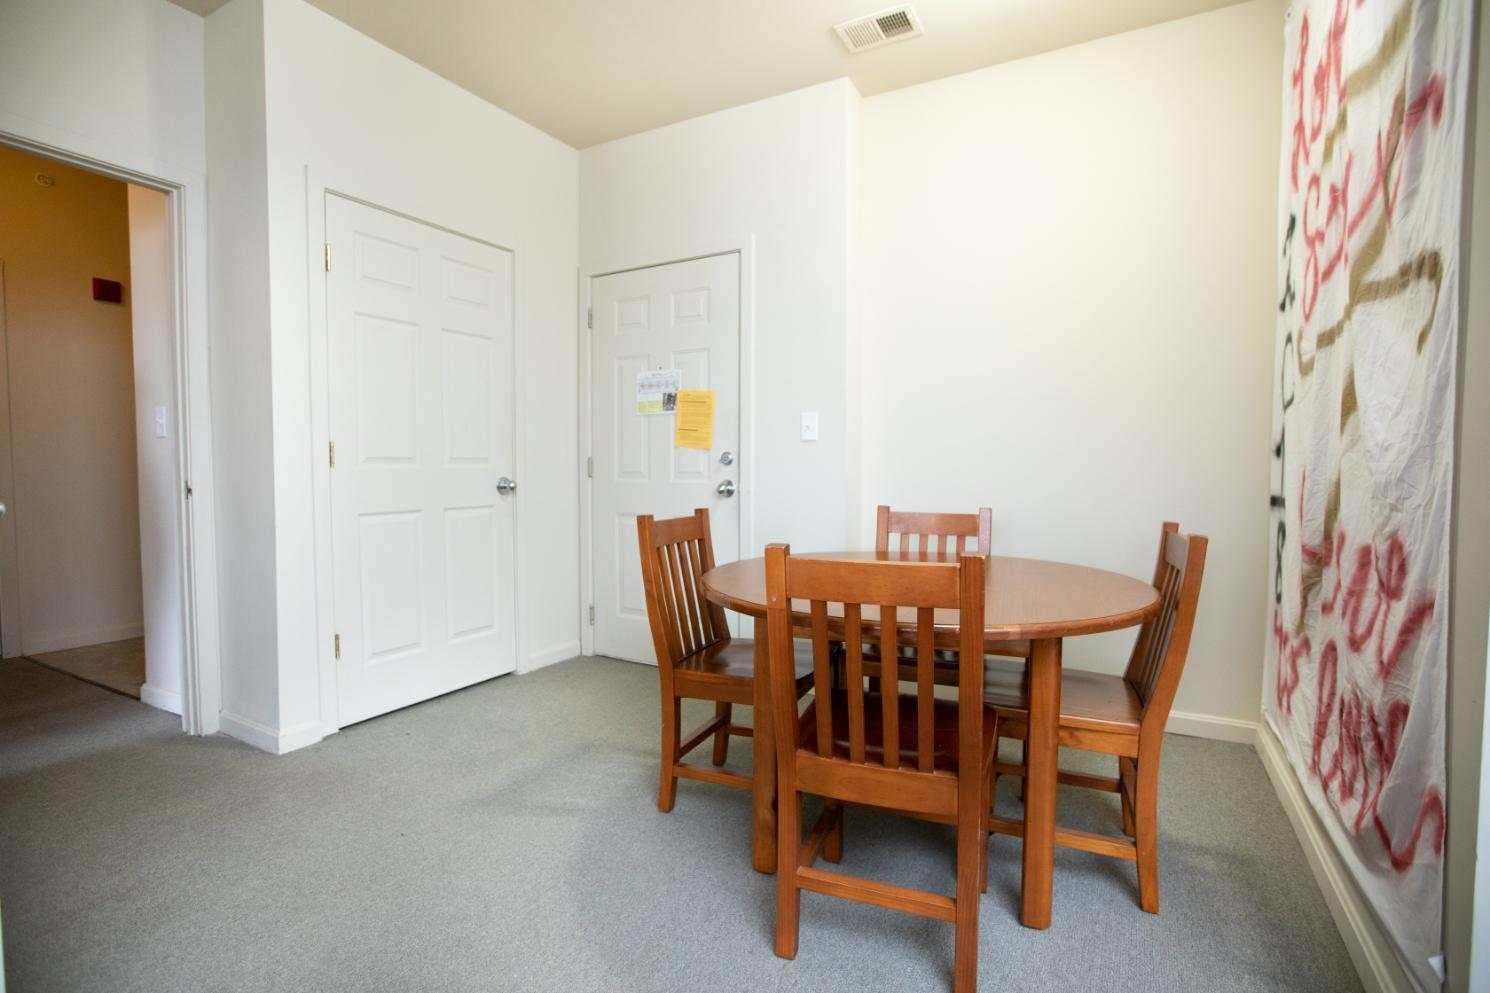 Longwood Landings 4 Bedroom Apartment; Entry way with dining table and 4 chairs